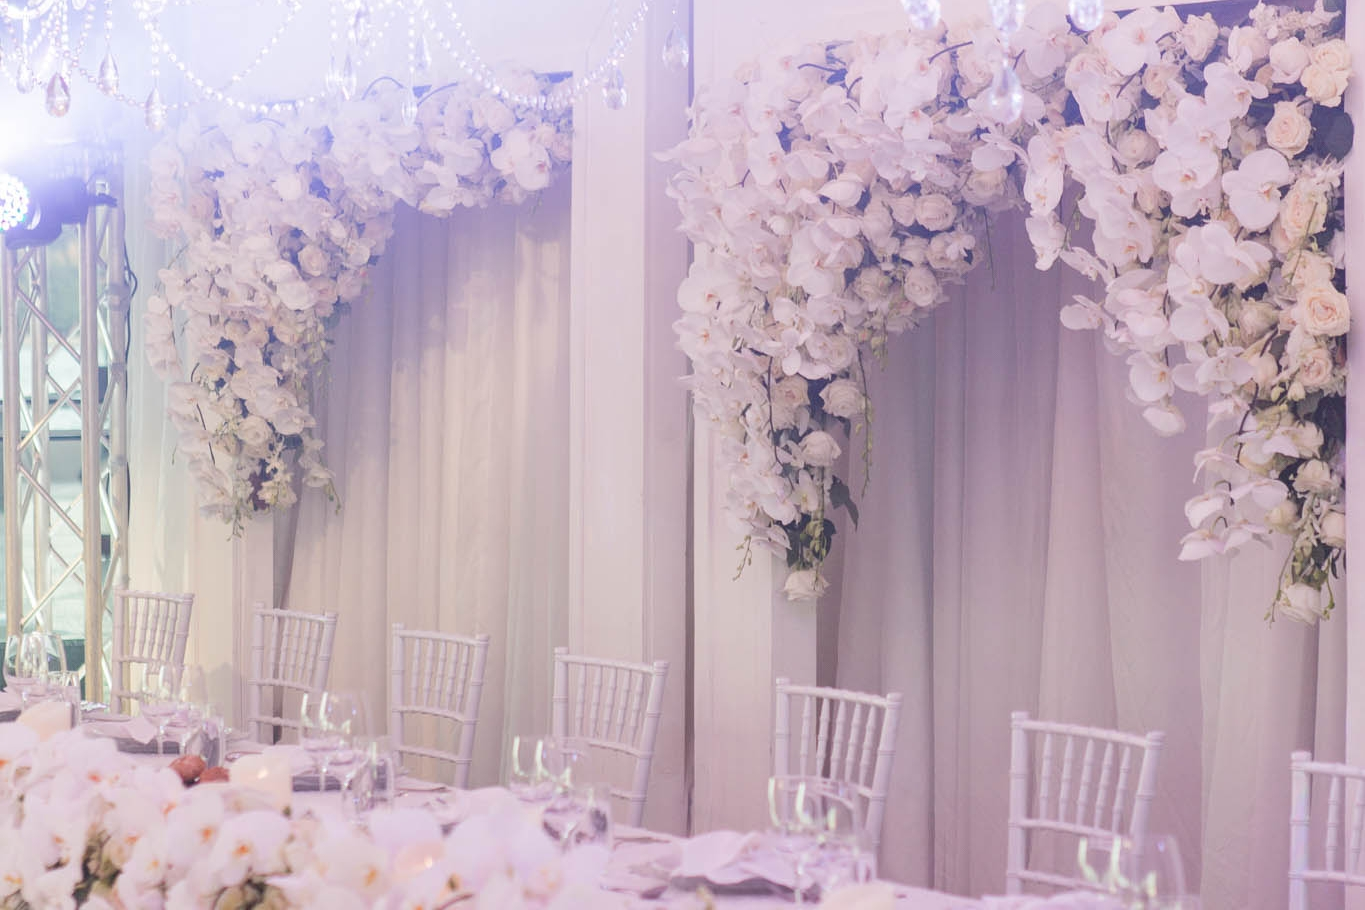 AN ELEGANT WHITE WEDDING